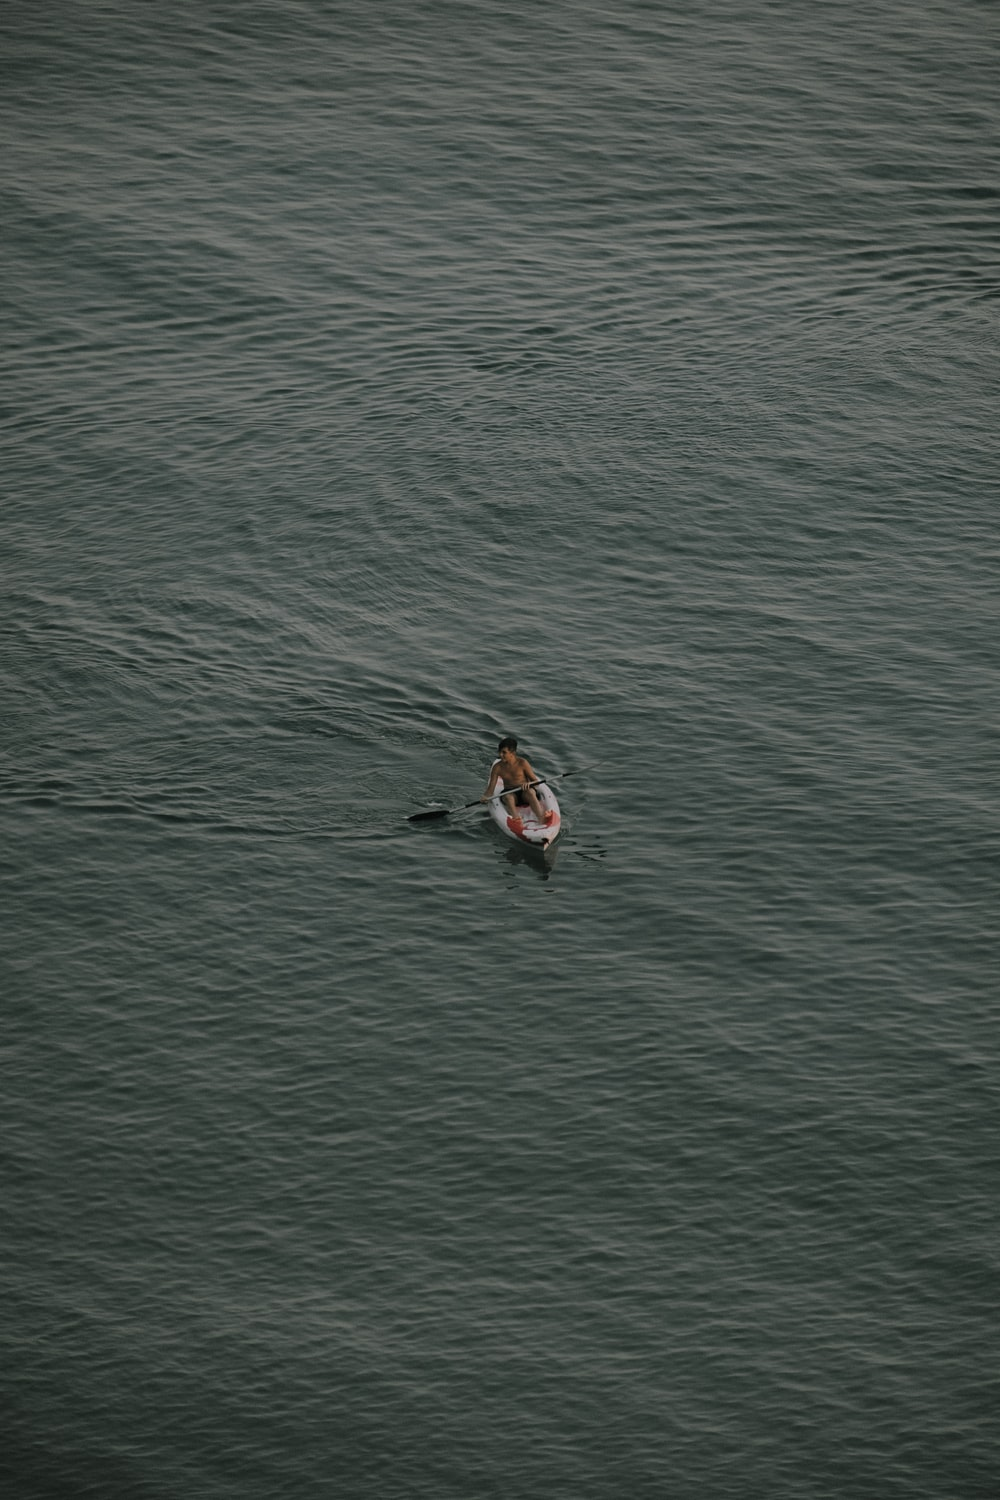 person kayaking on body of water